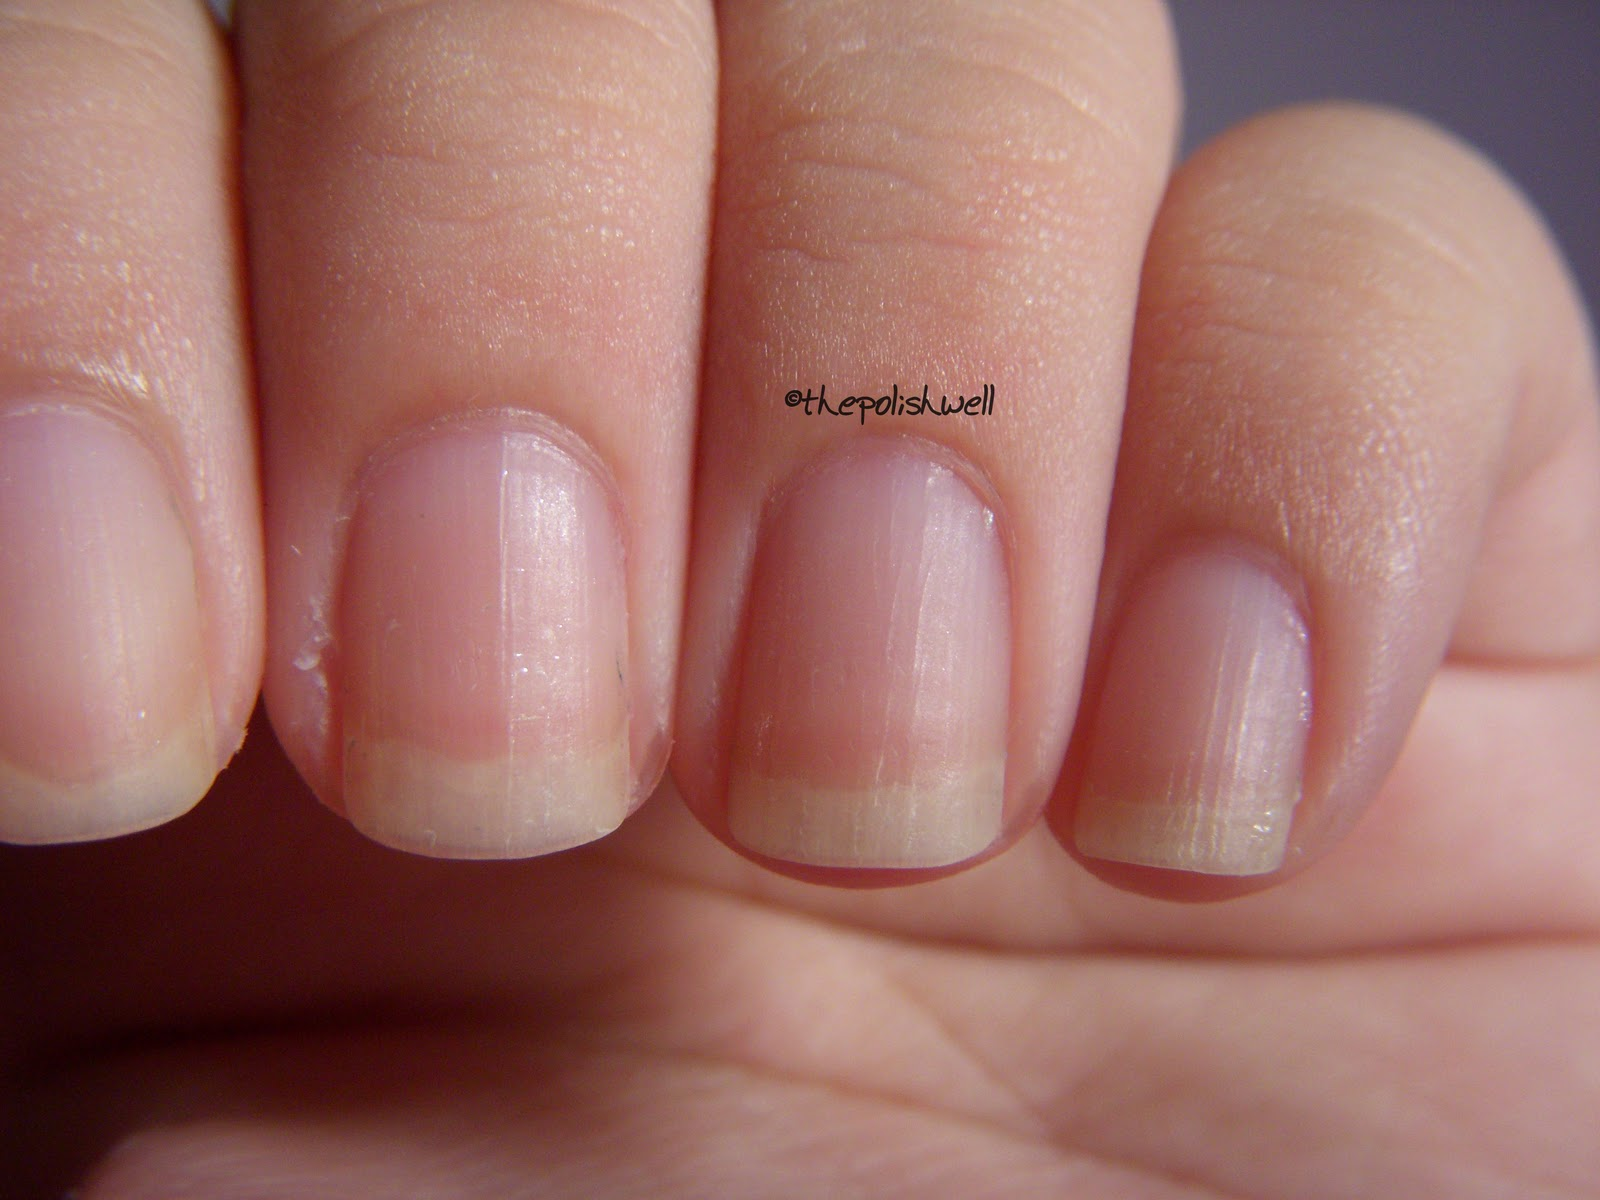 Nails ridges ~ Beautify themselves with sweet nails